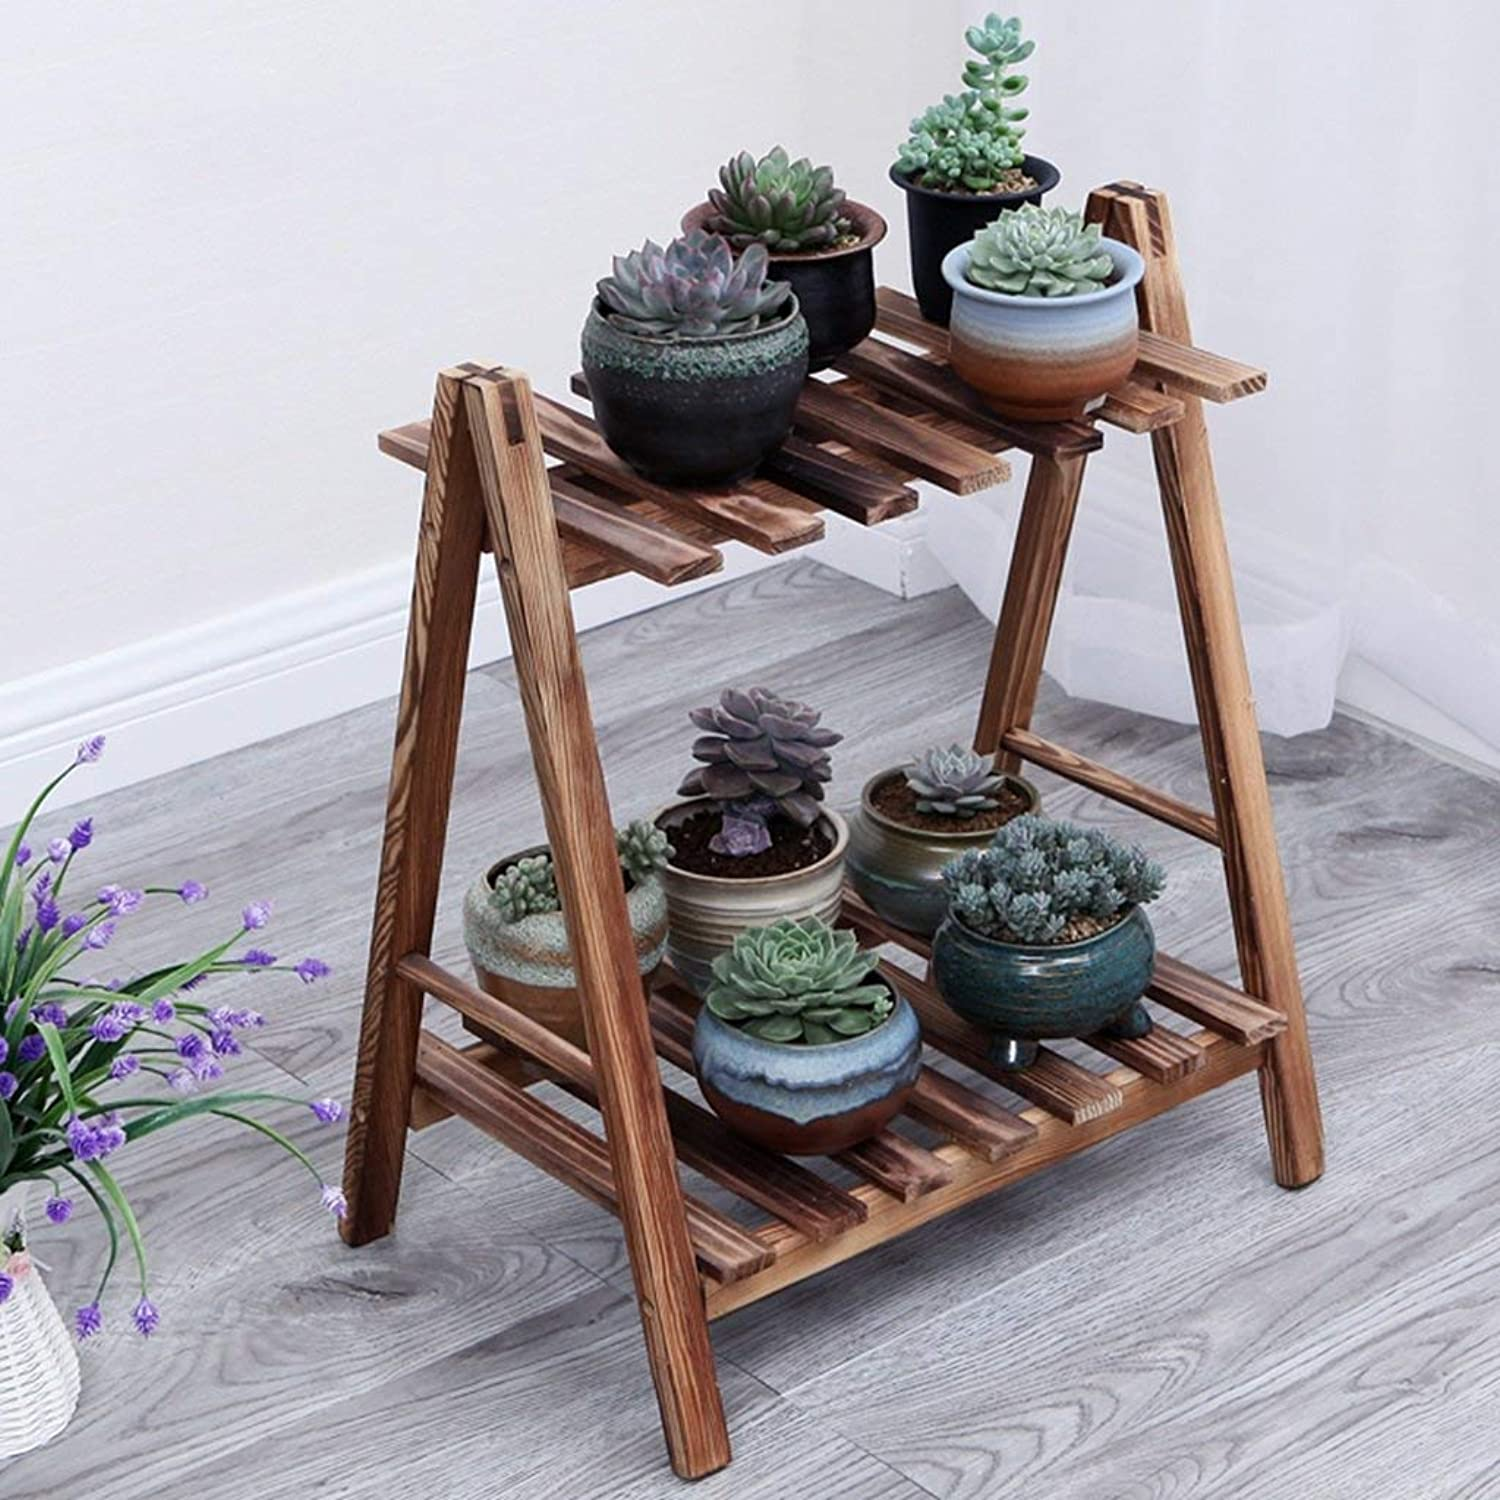 DEED Wood Flower Stand Outdoor Rack Stand Indoor and Outdoor Balcony Decorative Shelf Living Room Plant Space Saving Flower Pot Holder